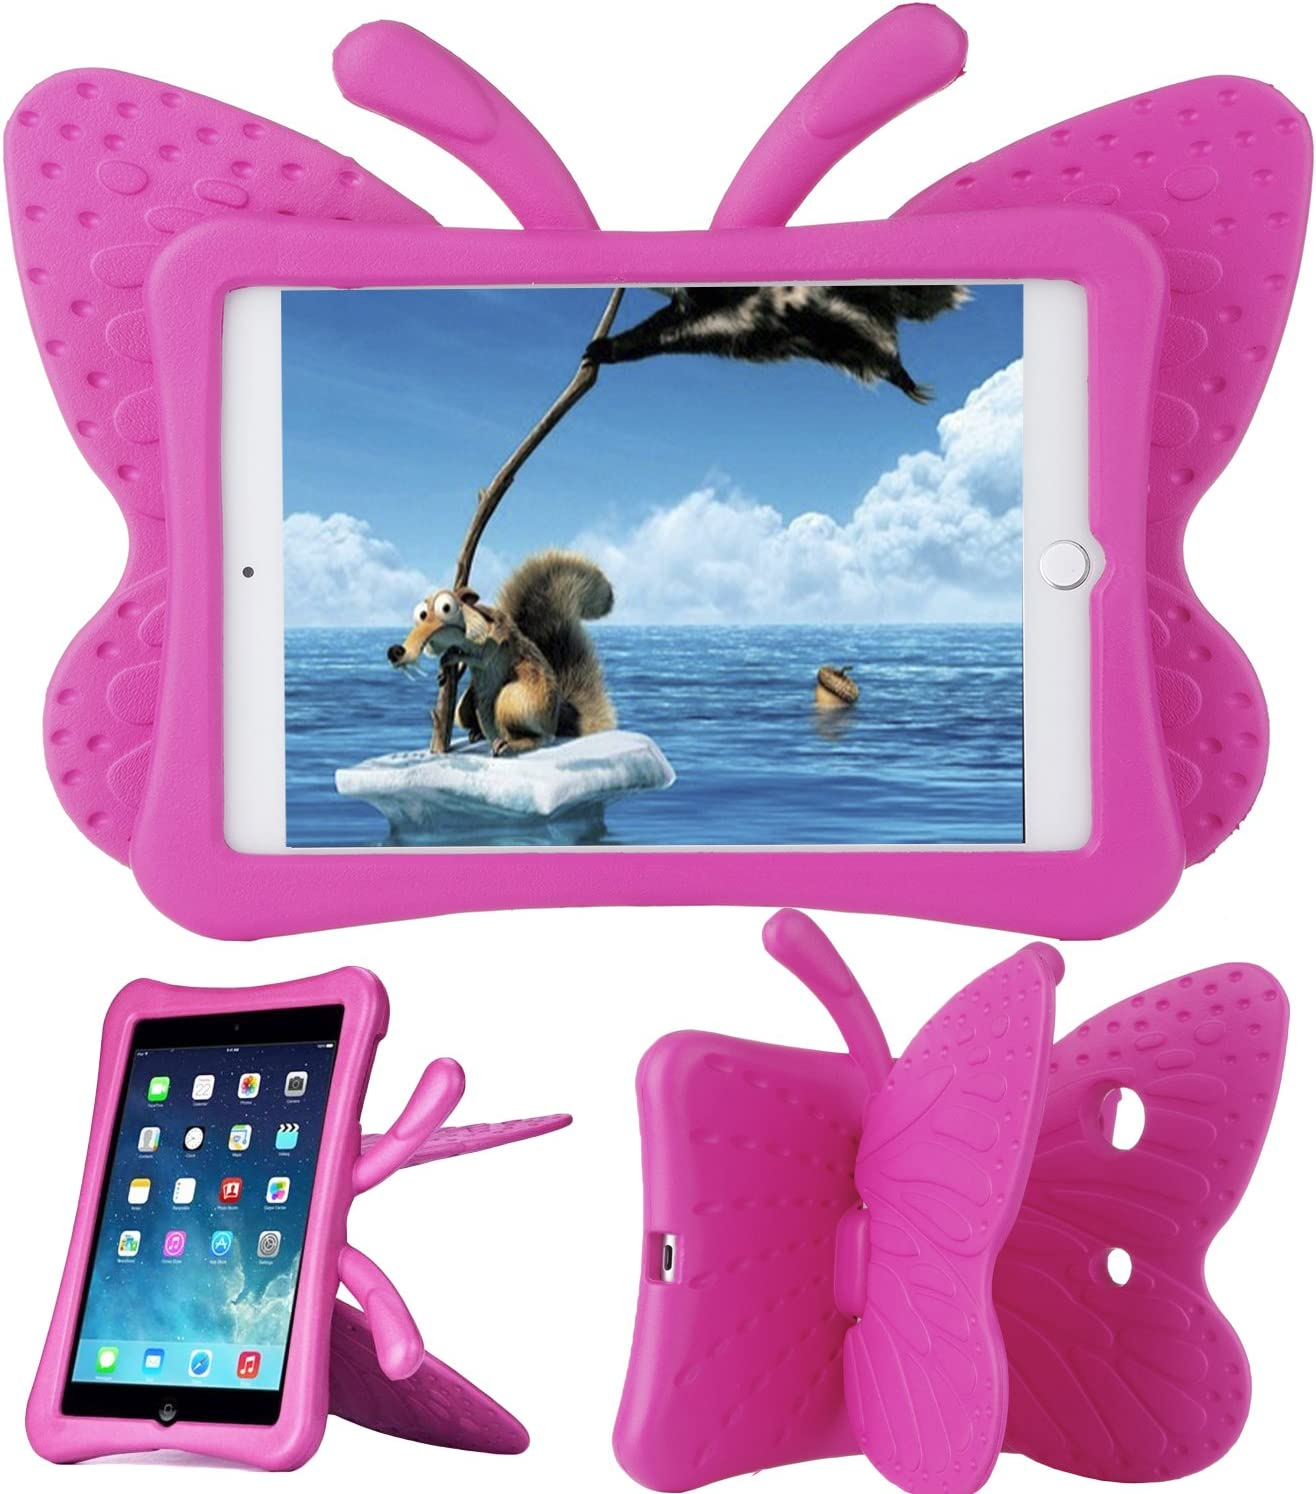 Xboun Butterfly Series EVA Shock Proof Protective Case for Apple iPad Mini 1/ Mini 2/ Mini 3/ Mini 4/ Mini 5 - Rose